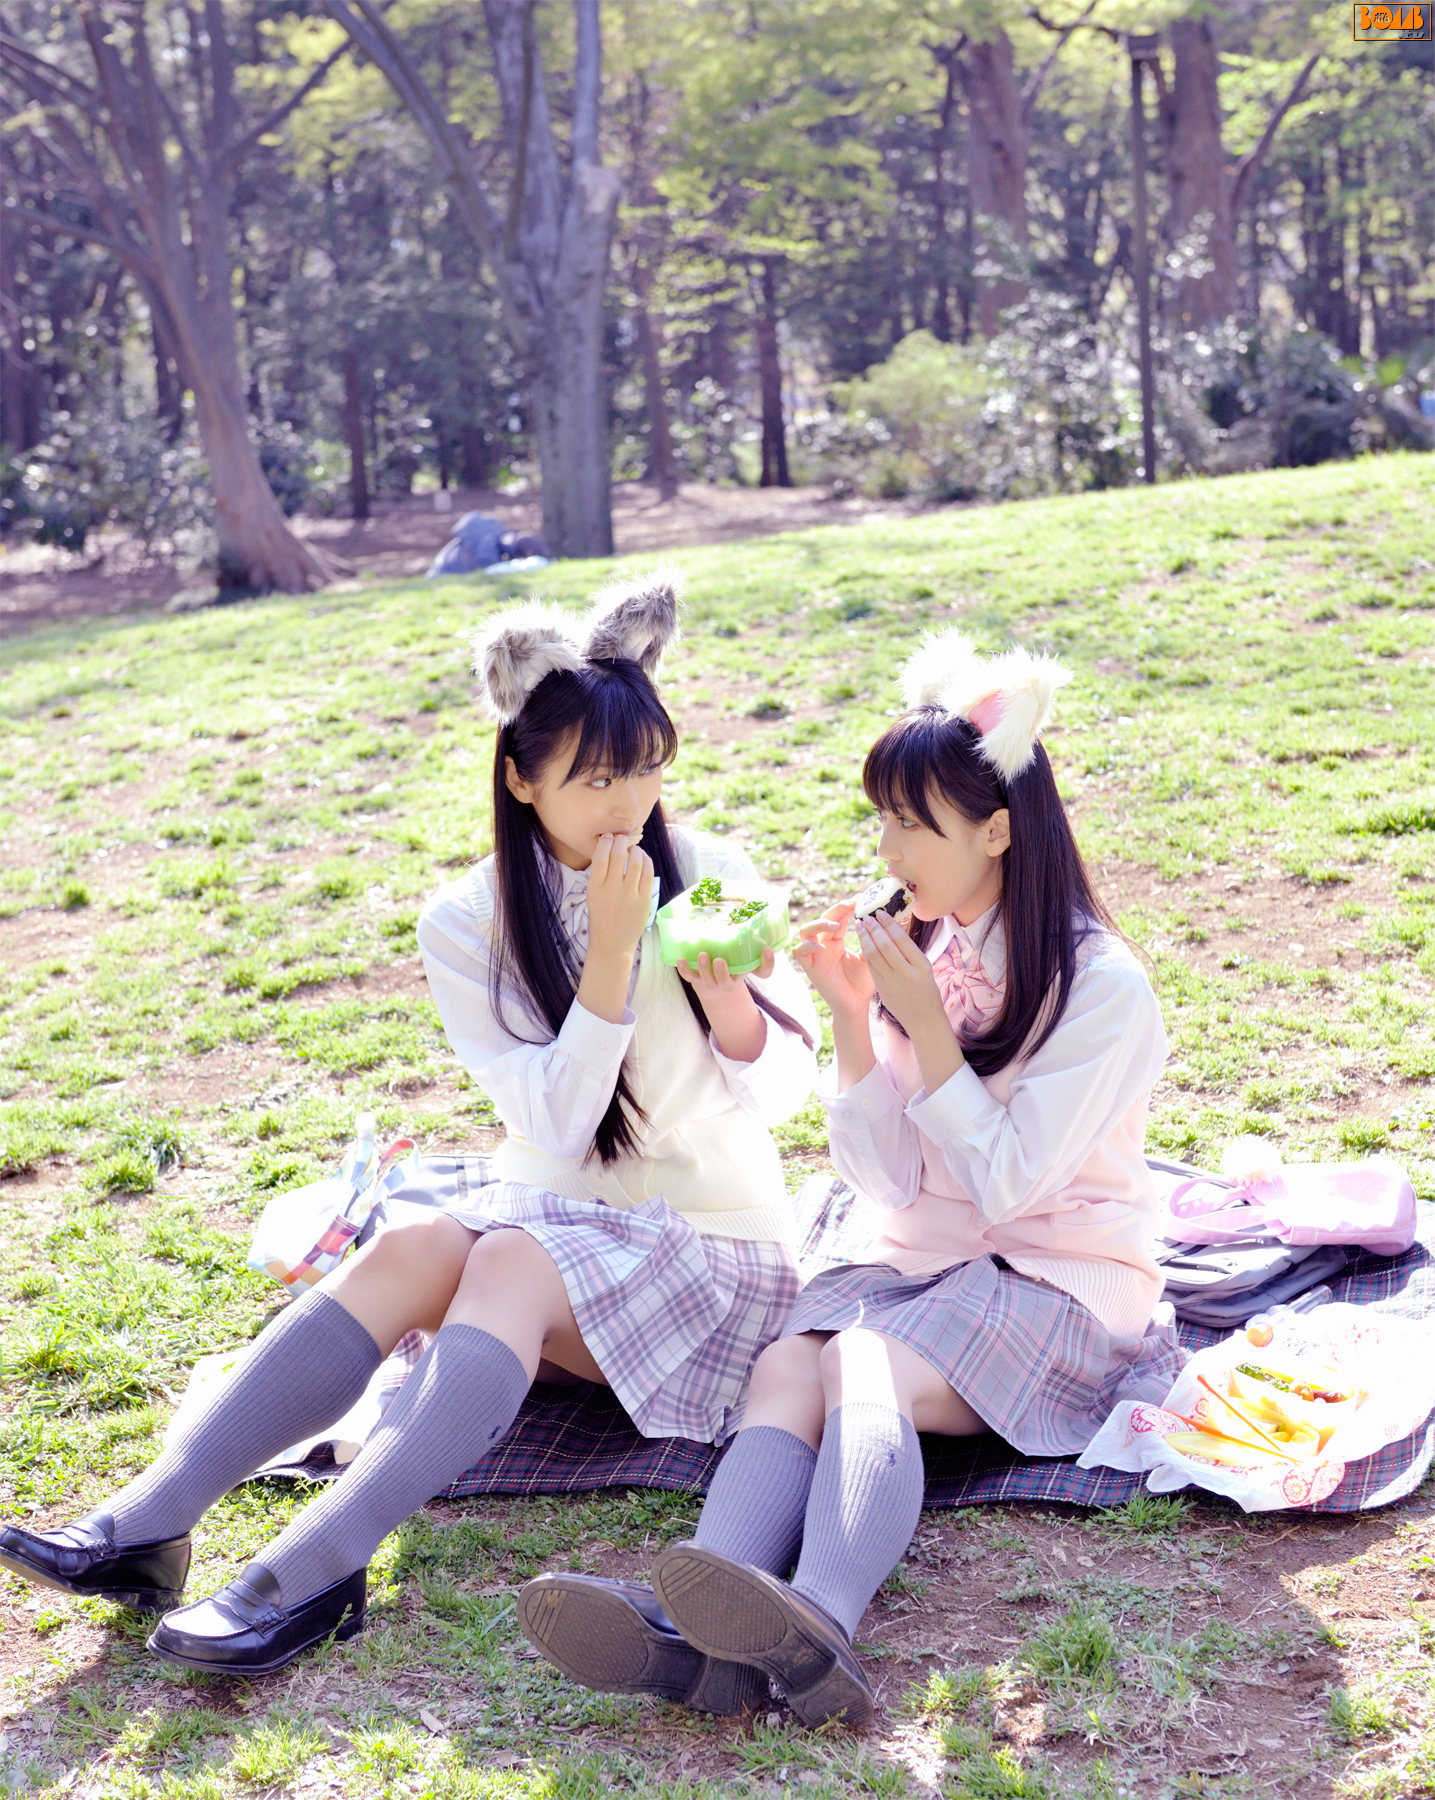 Eat lunch in the park play with bikini and so onThe ultimate cute explosion009